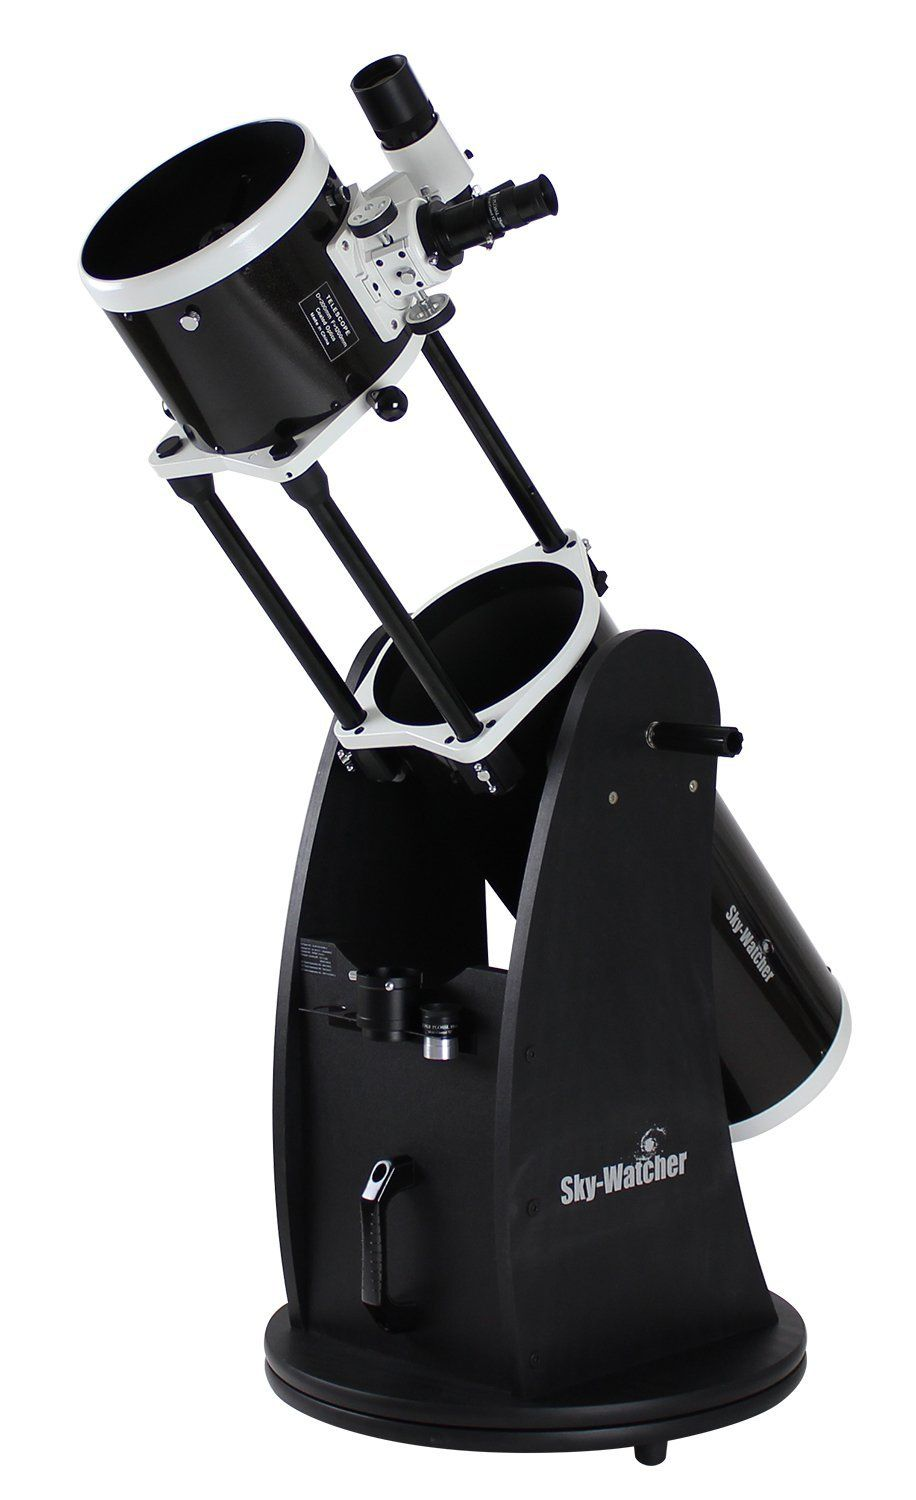 Sky Watcher 8 Collapsible Dobsonian Telescope By Sky Watcher List Price 629 95 Price 429 99 Free Shipping De Telescopes Telescopes For Sale Celestron